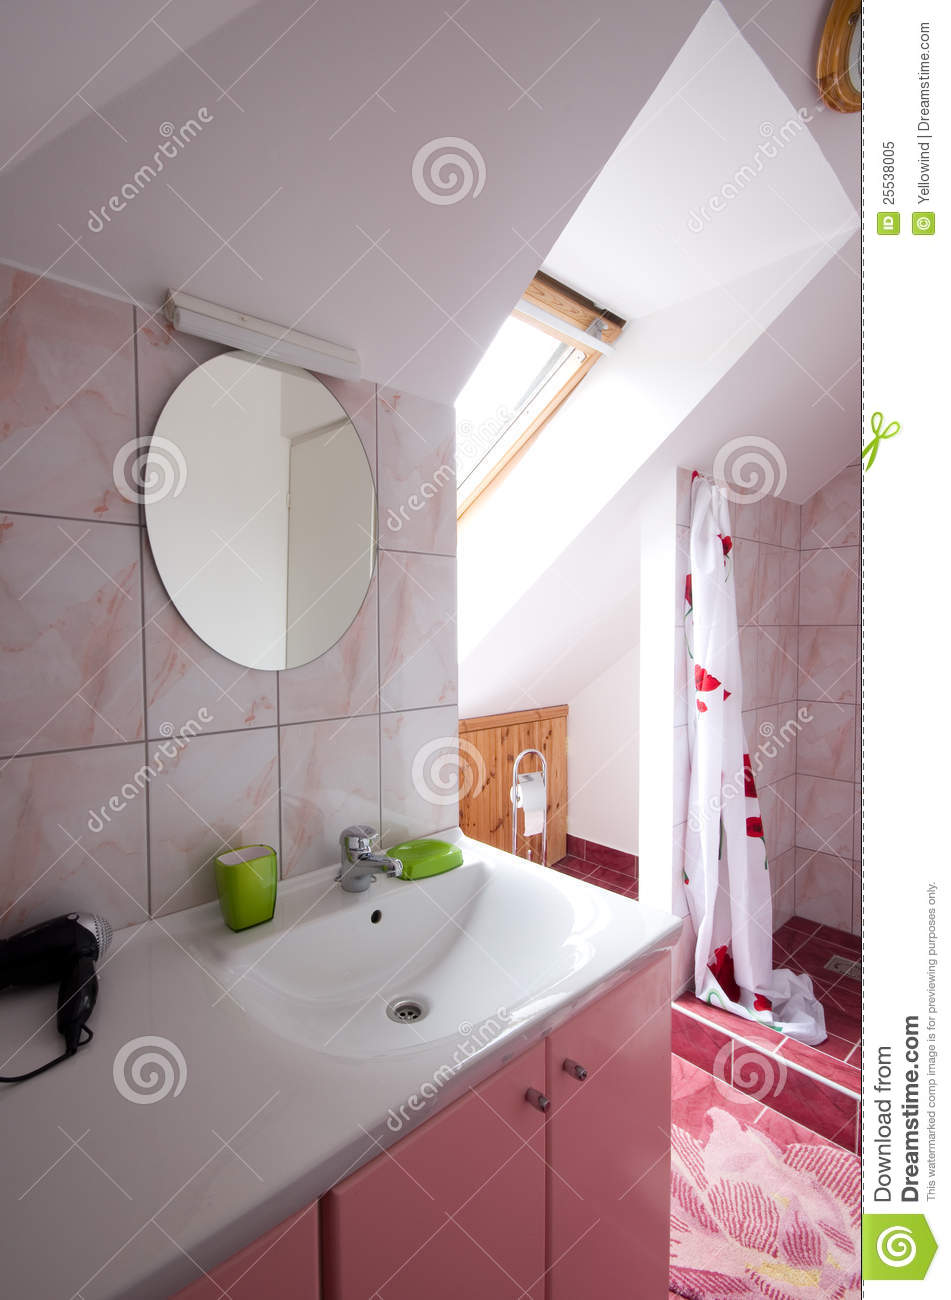 Bathroom With Shower Royalty Free Stock Photo Image 25538005